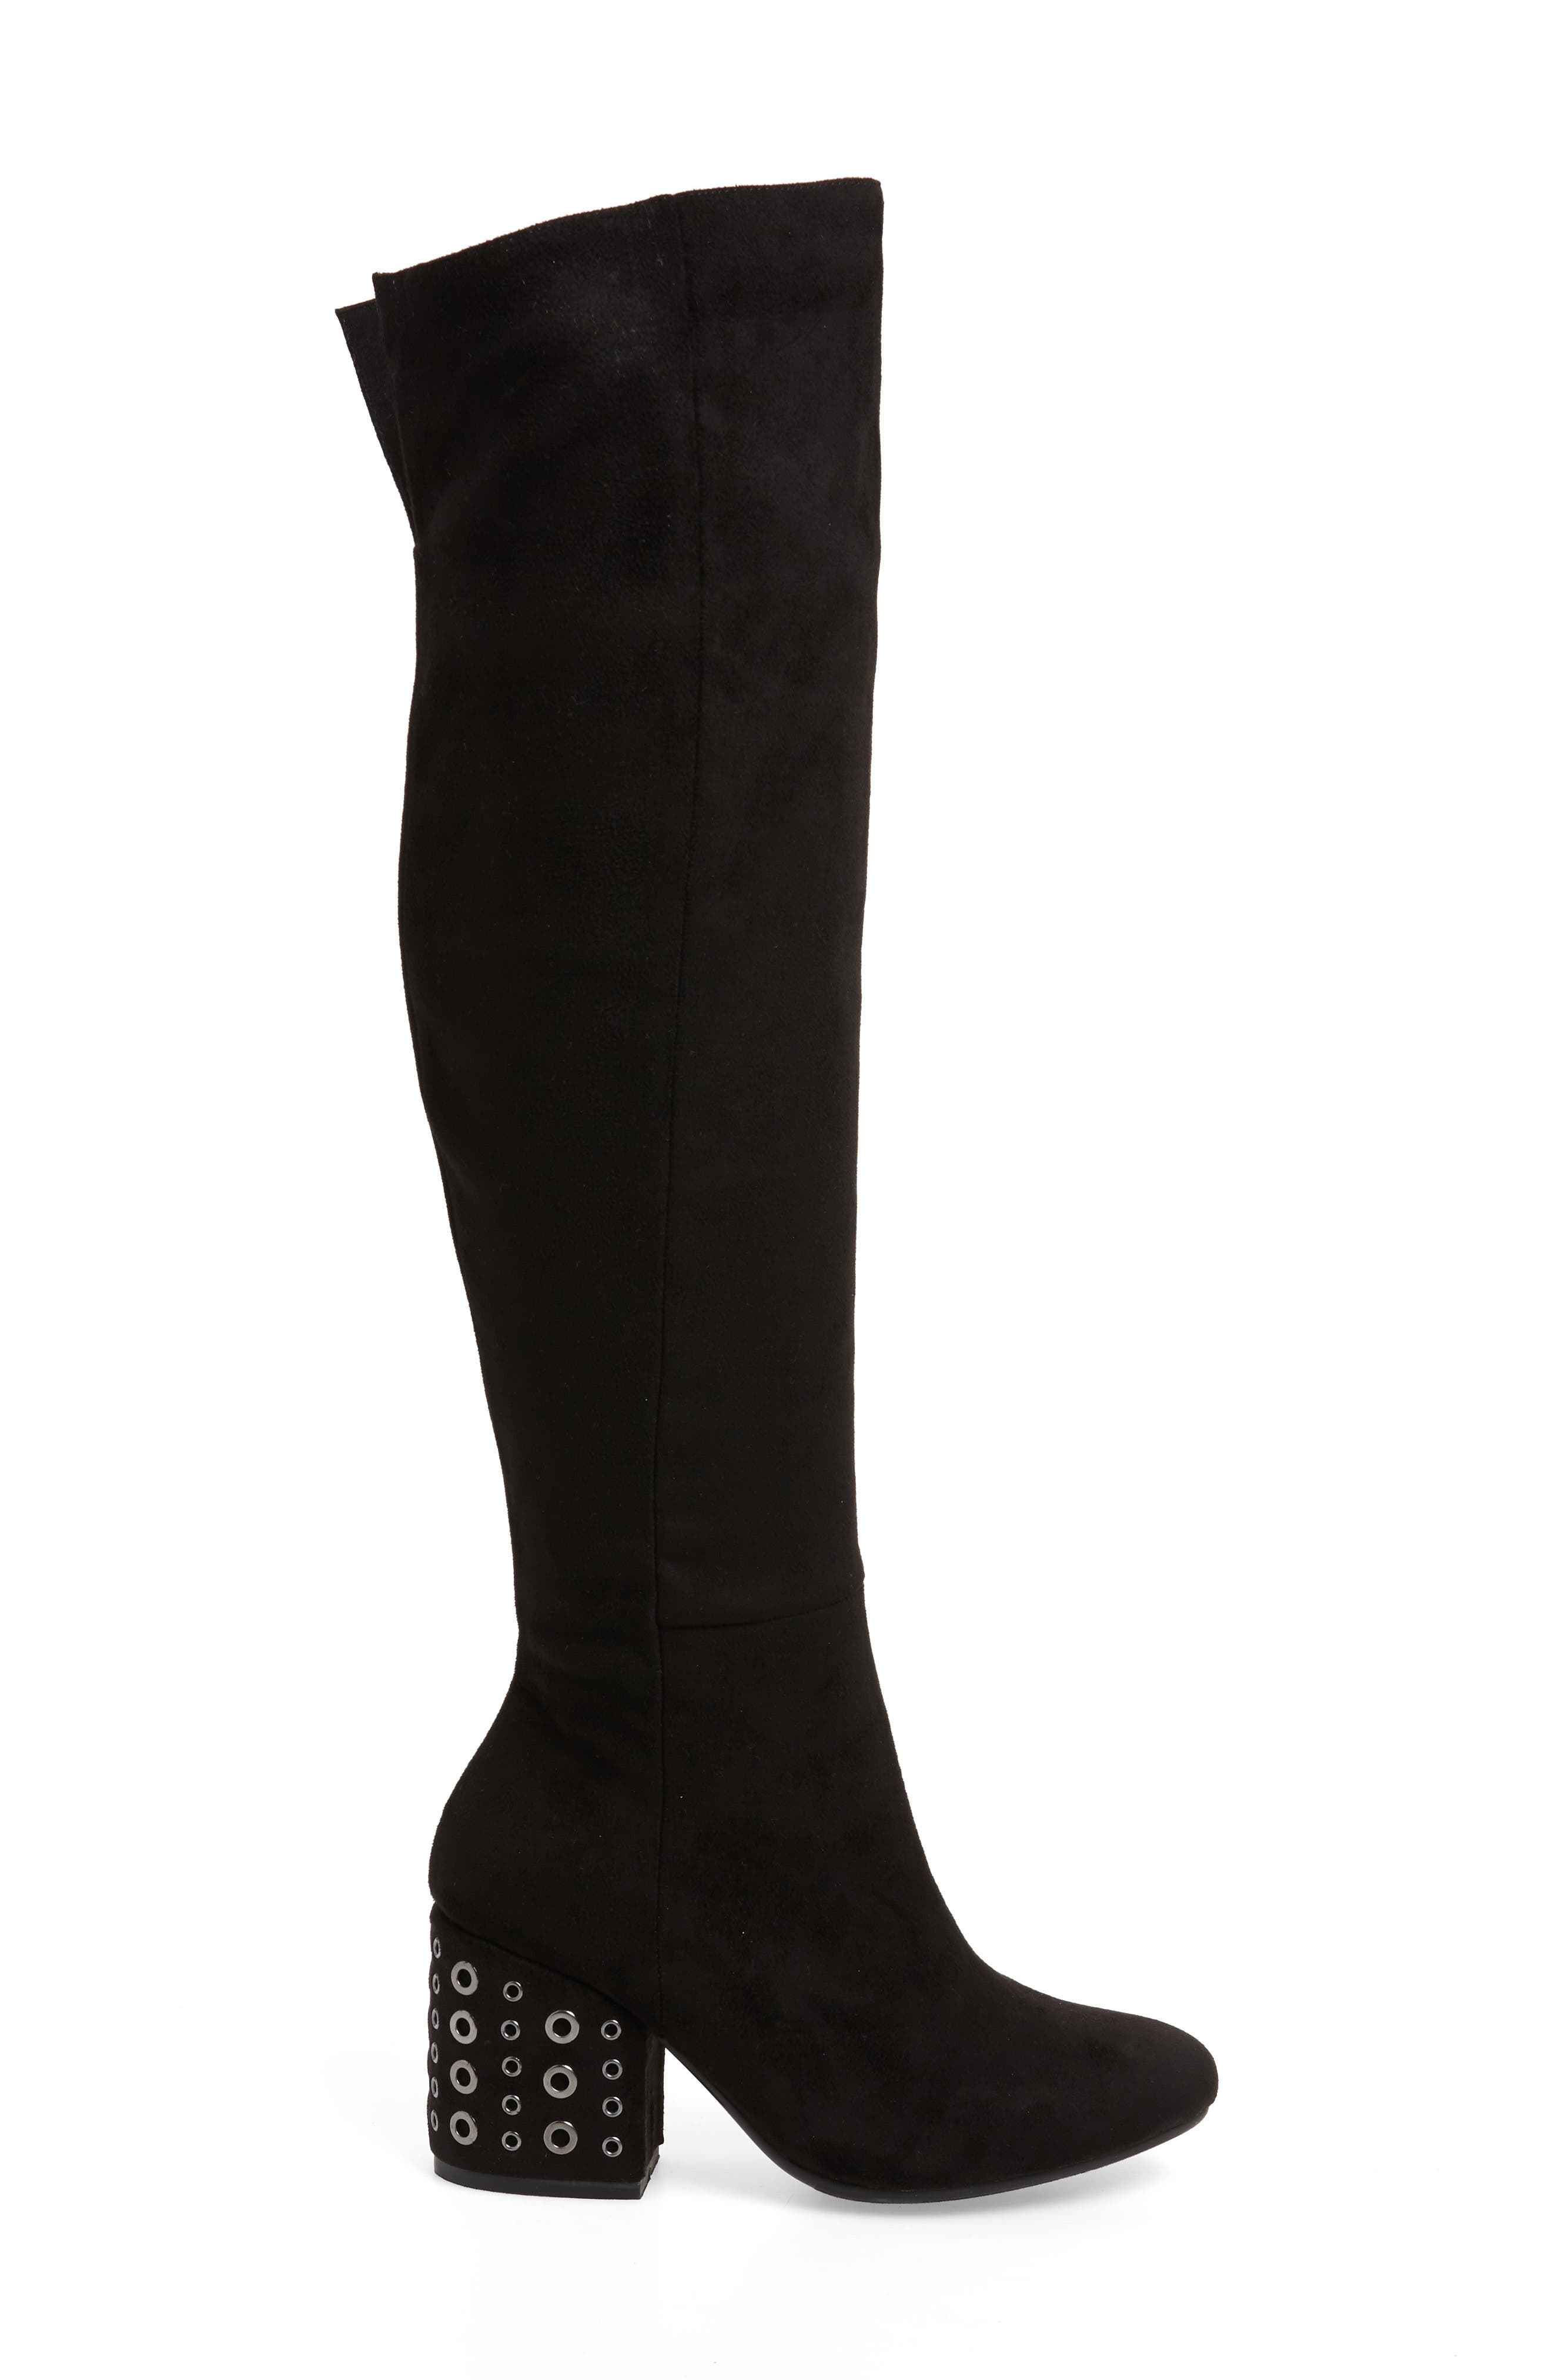 Ellaria Over the Knee Boot,                             Alternate thumbnail 3, color,                             BLACK FABRIC